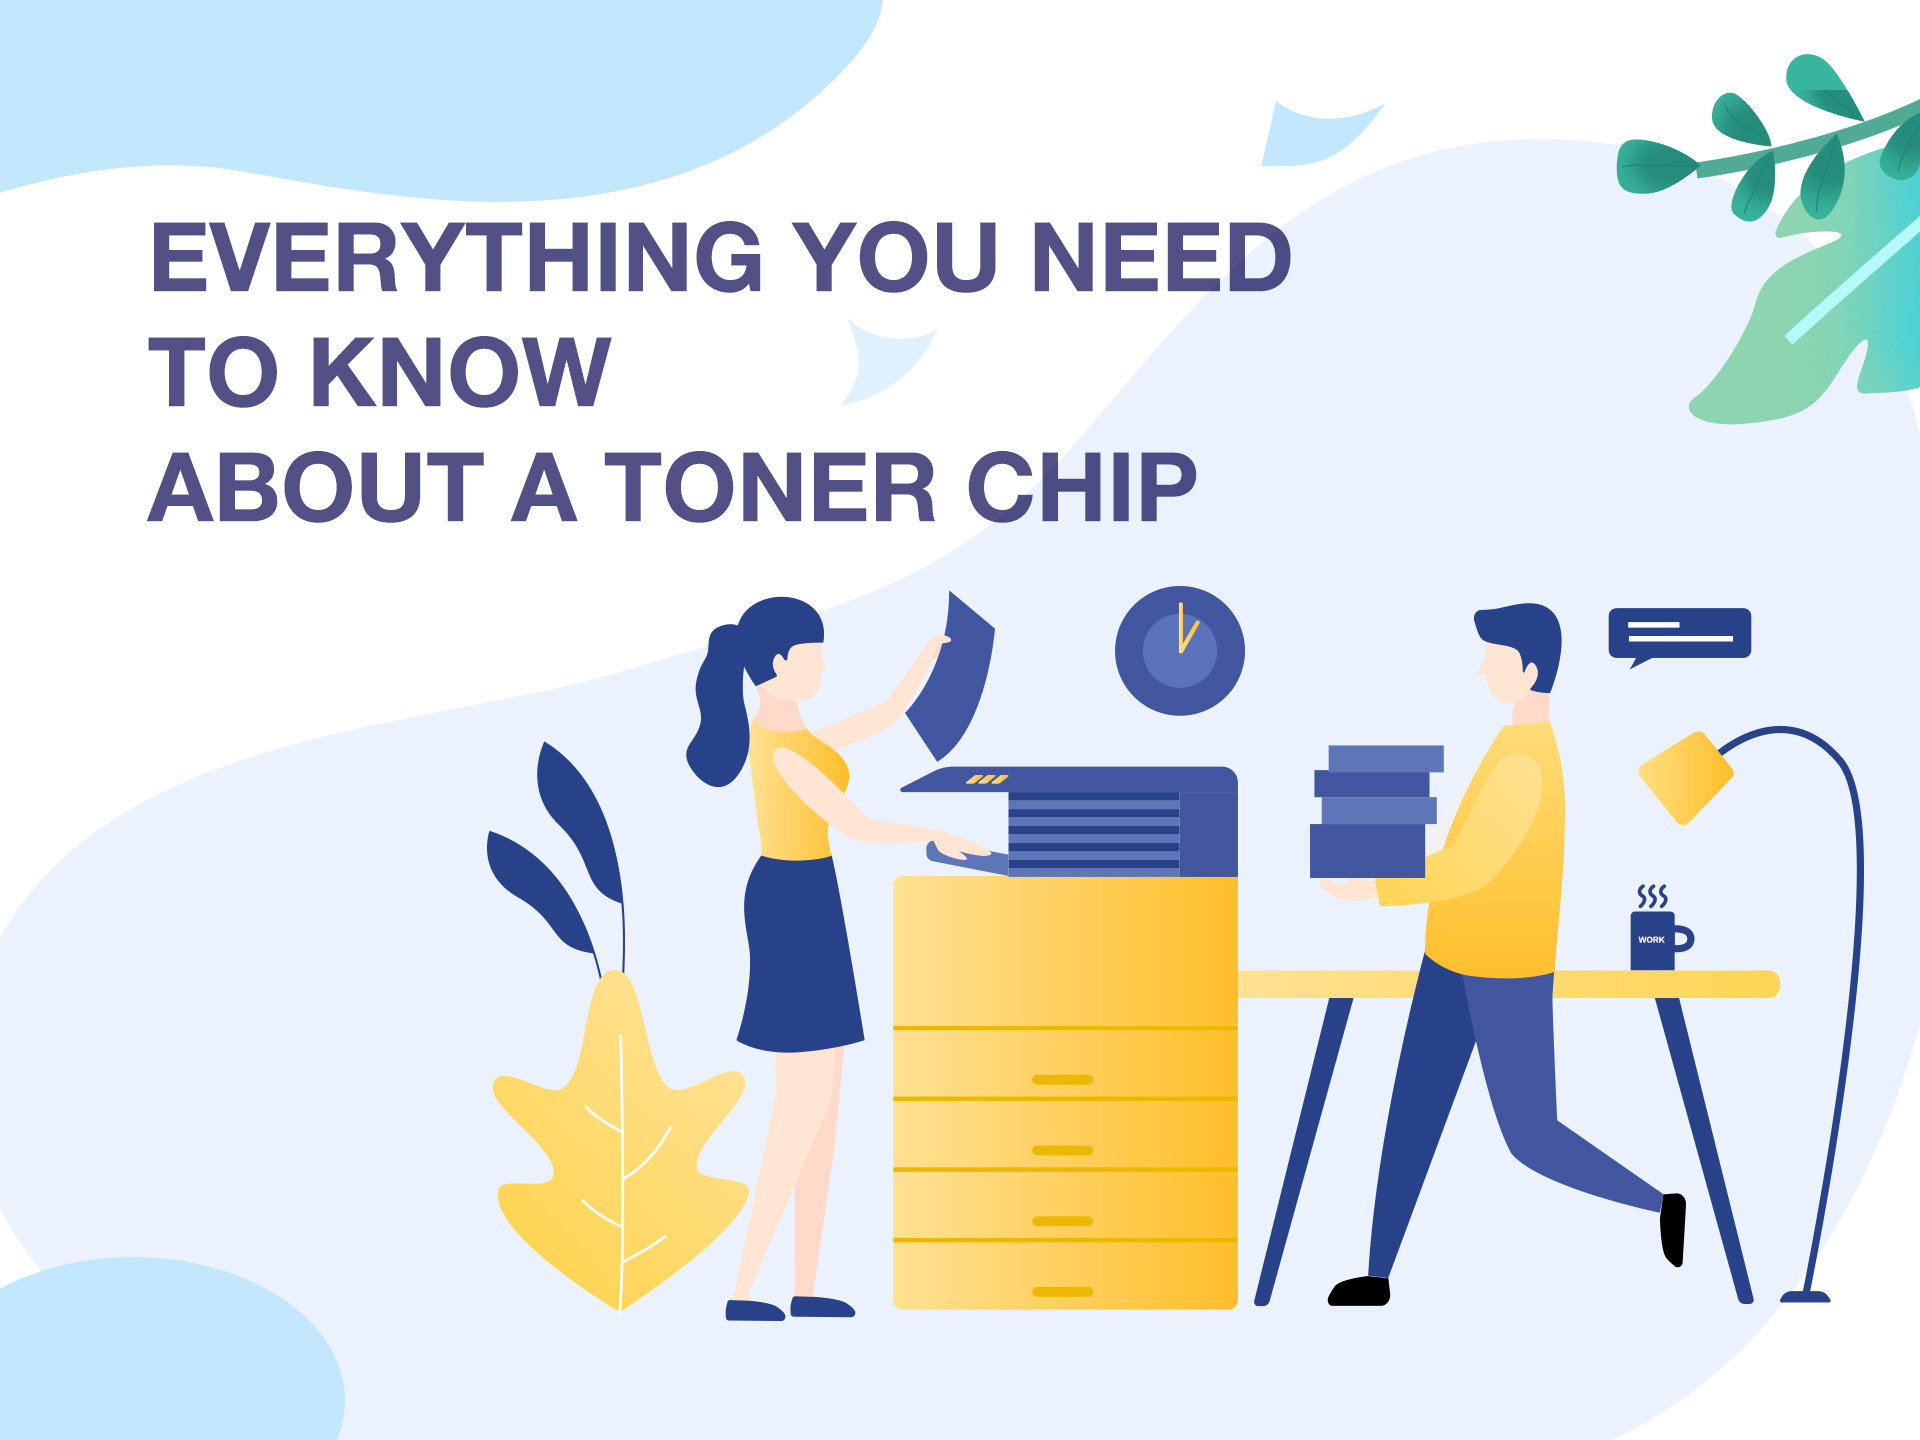 Everything You Need to Know About a Toner Chip